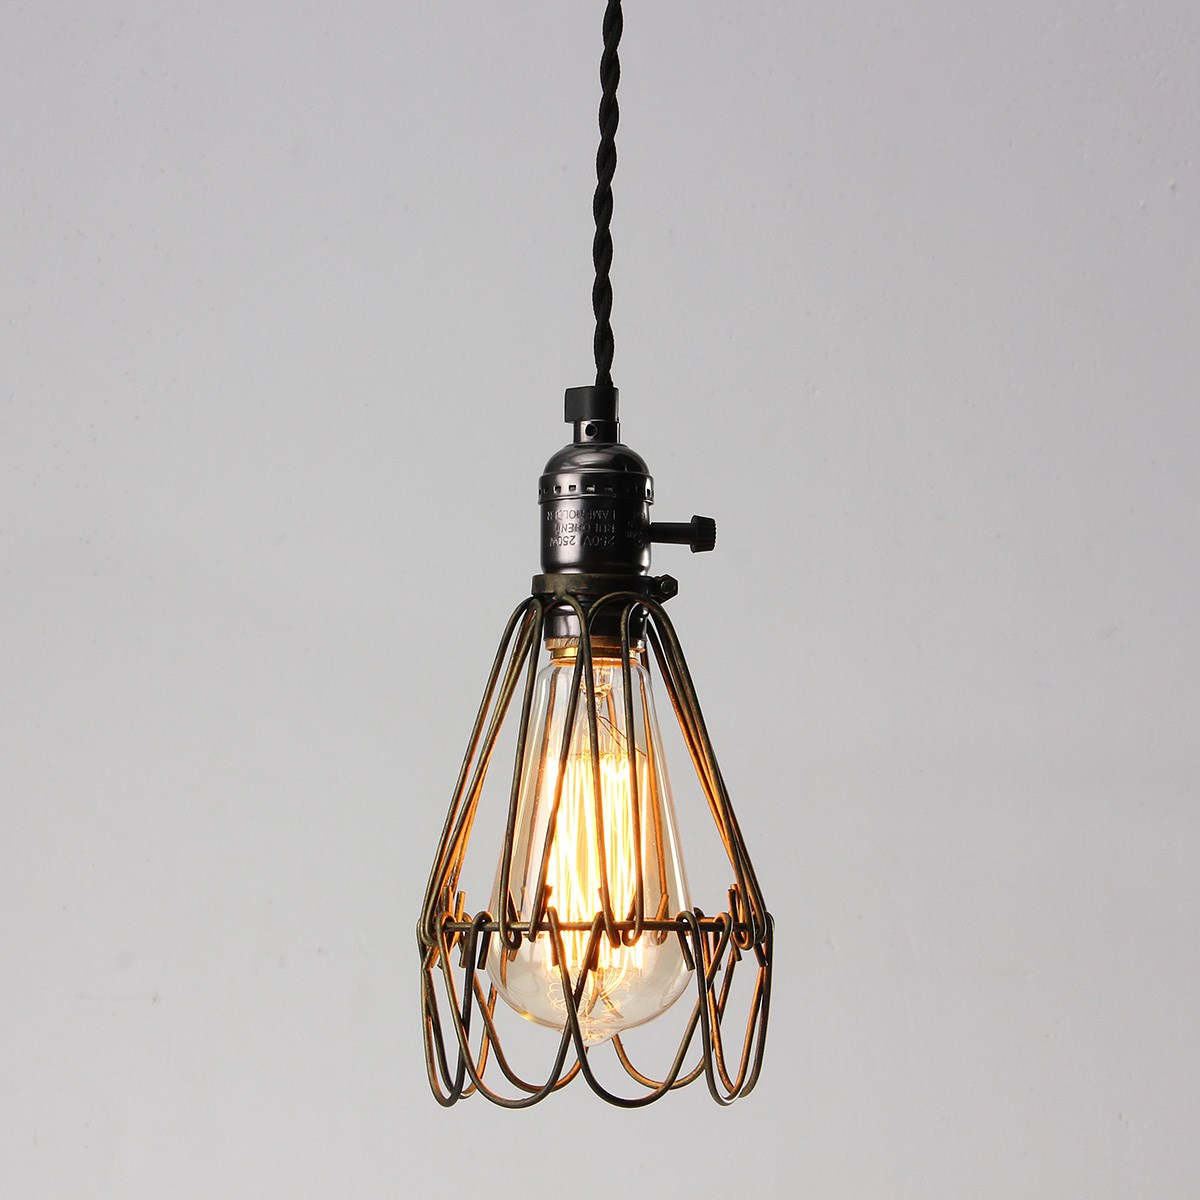 buy lamp cover retro vintage industrial pendant light bulb guard wire cage. Black Bedroom Furniture Sets. Home Design Ideas